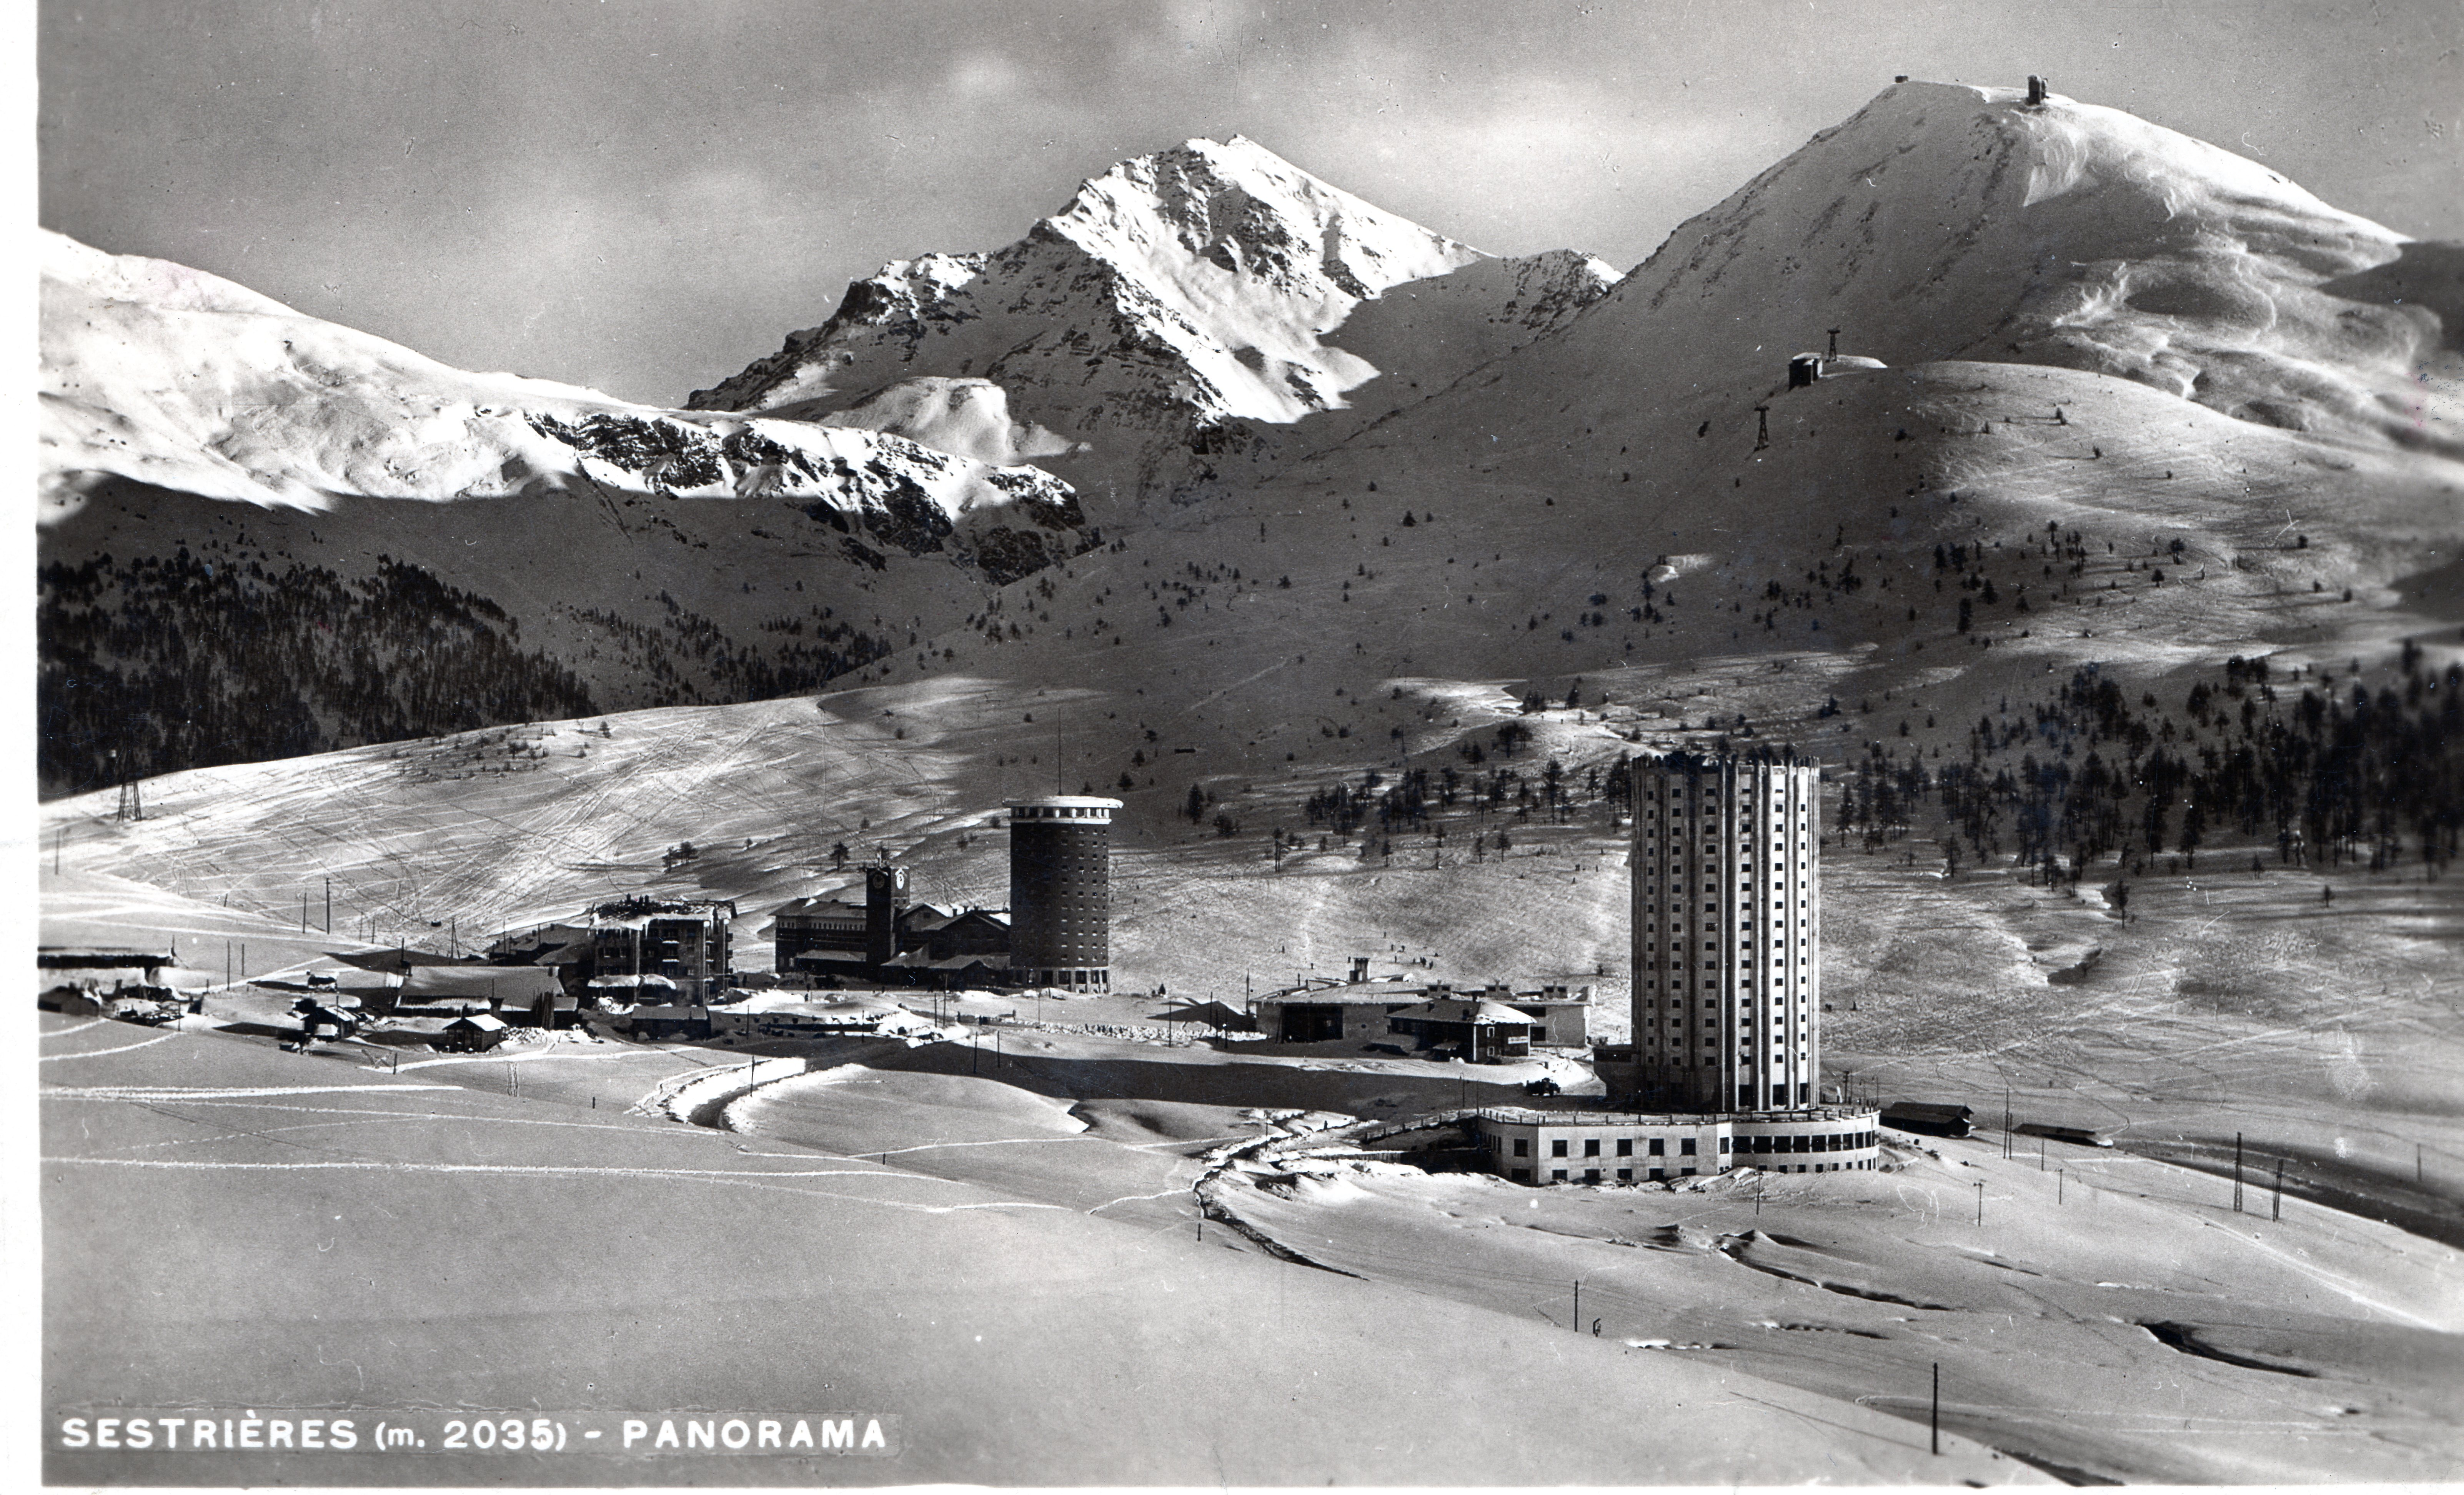 Sestriere.